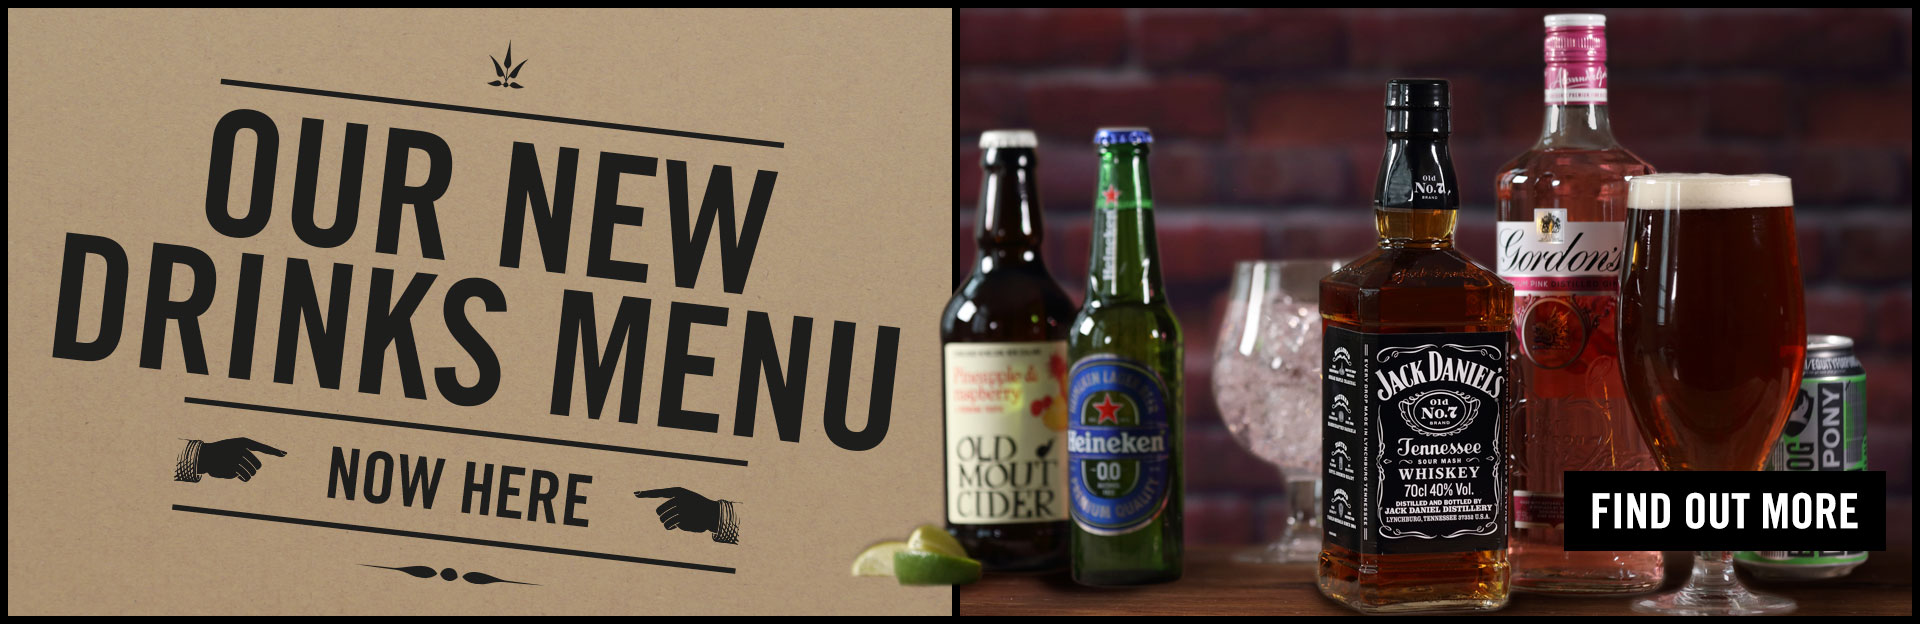 New Drinks Menu Coming Soon at The Bull